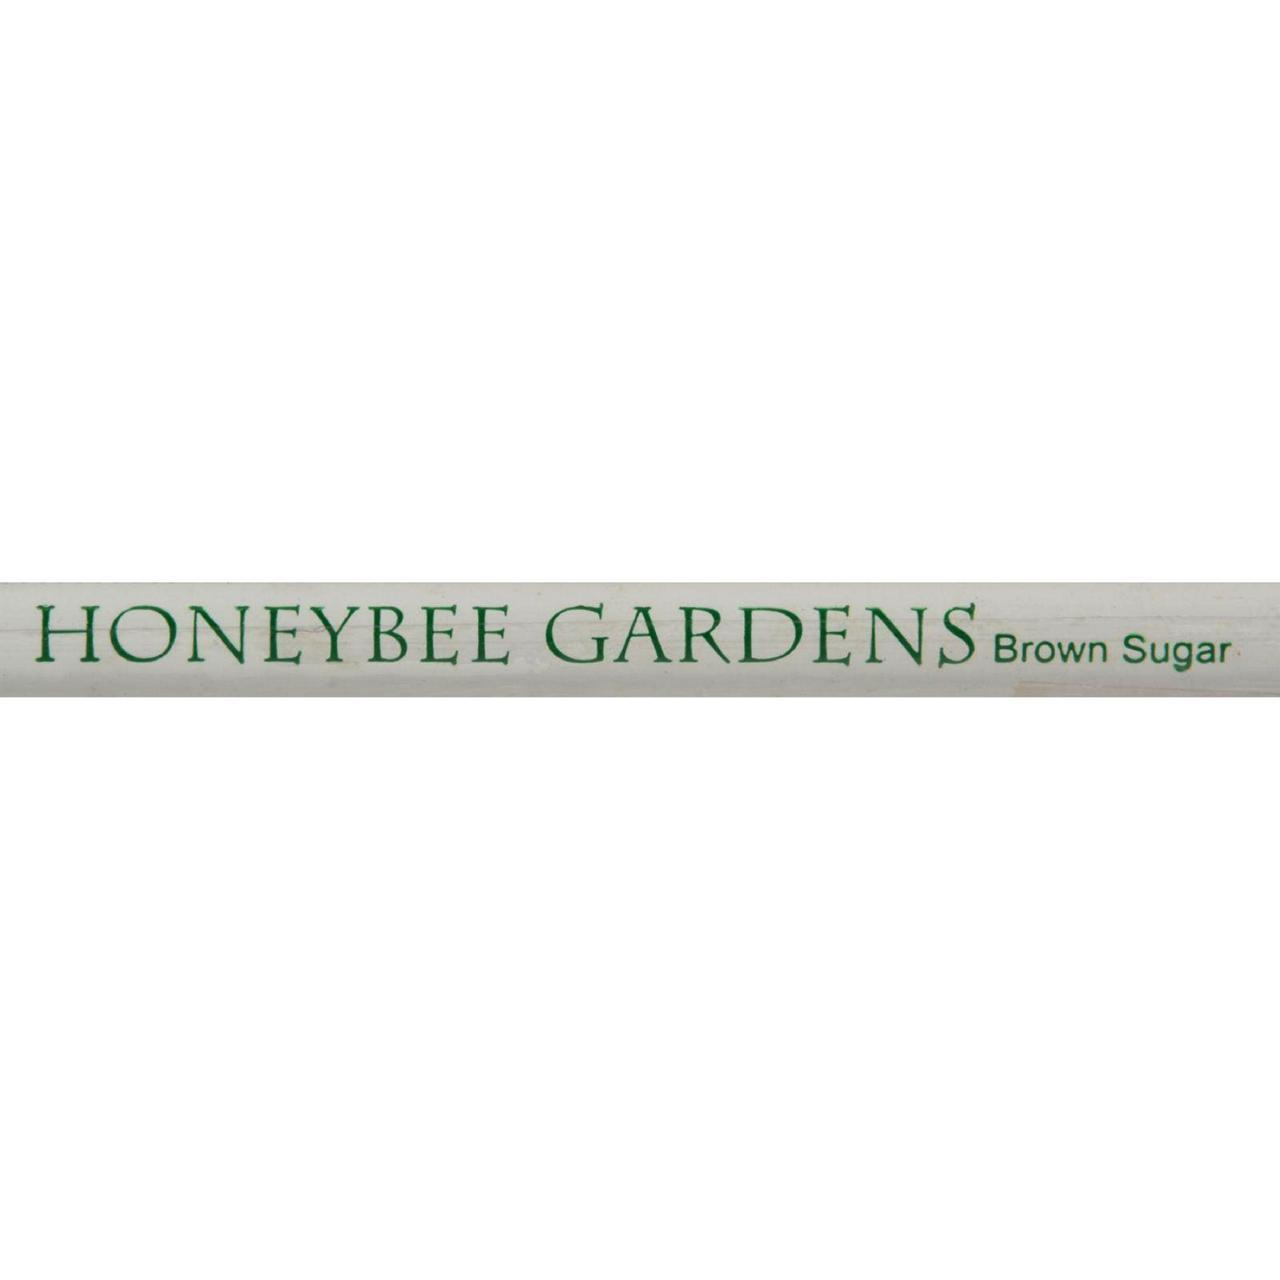 Honeybee Gardens Jobacolors Eye Liner Brown Sugar - 0.04 Oz